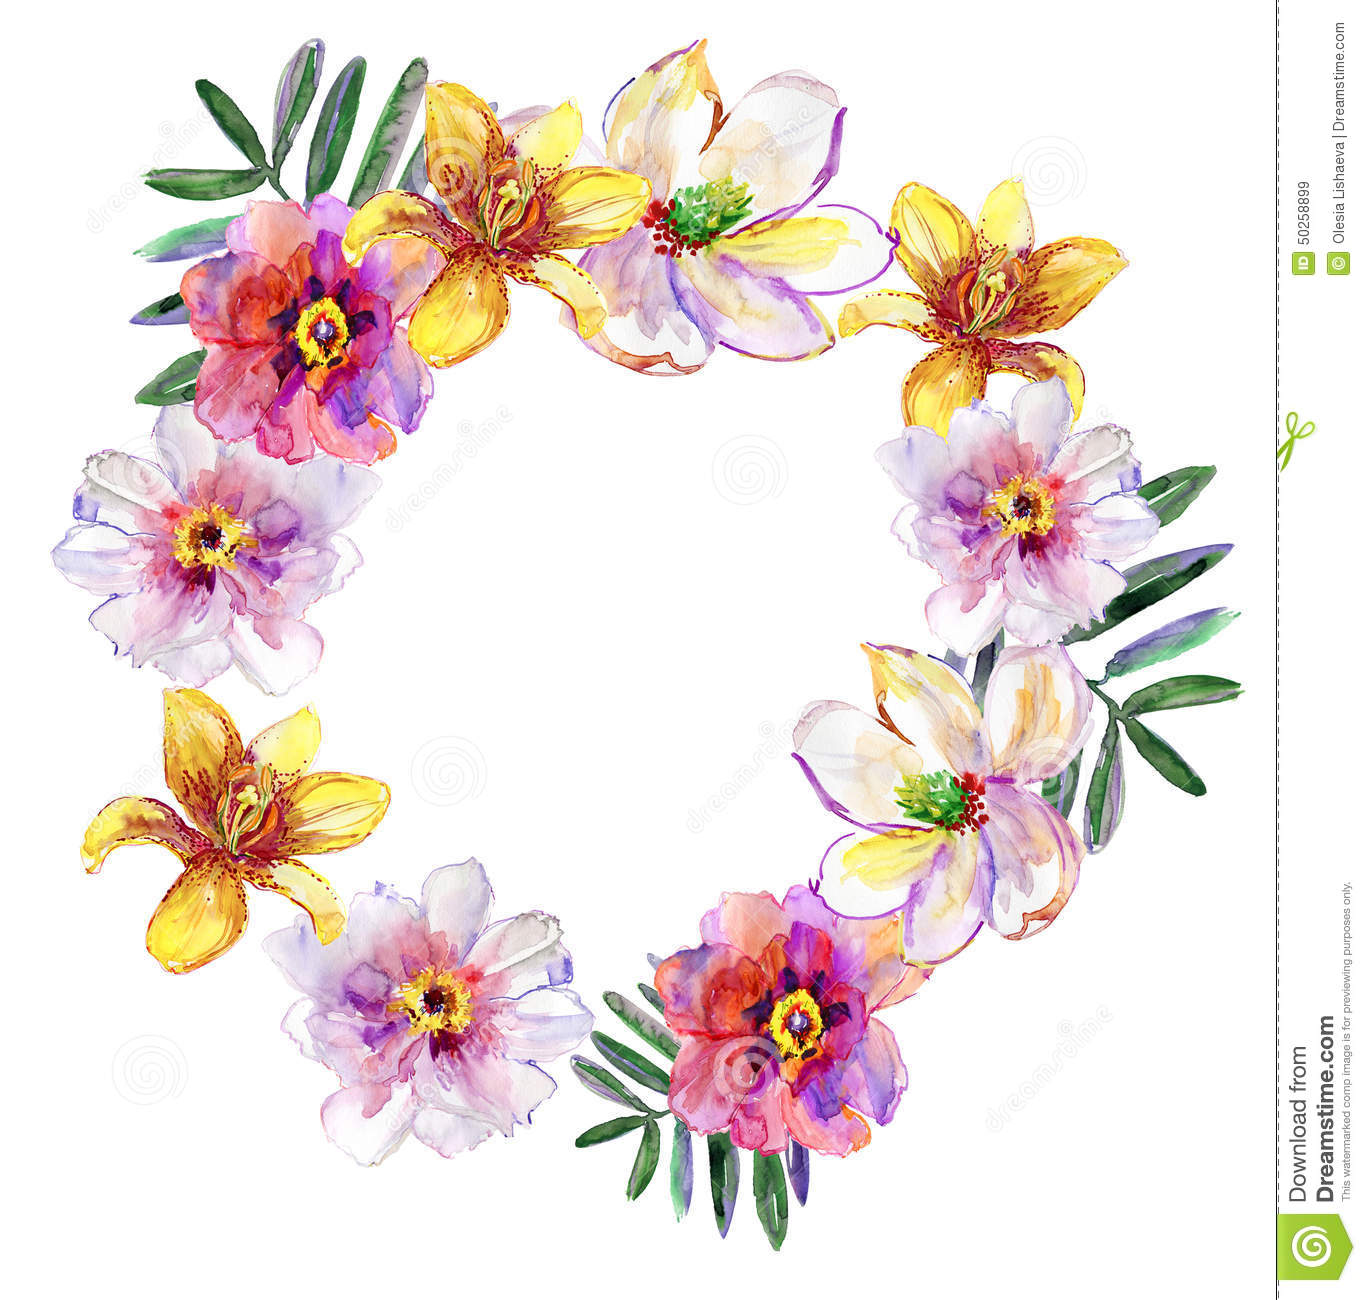 Tropical Floral Wreath Bouquet Drawn In Watercolor